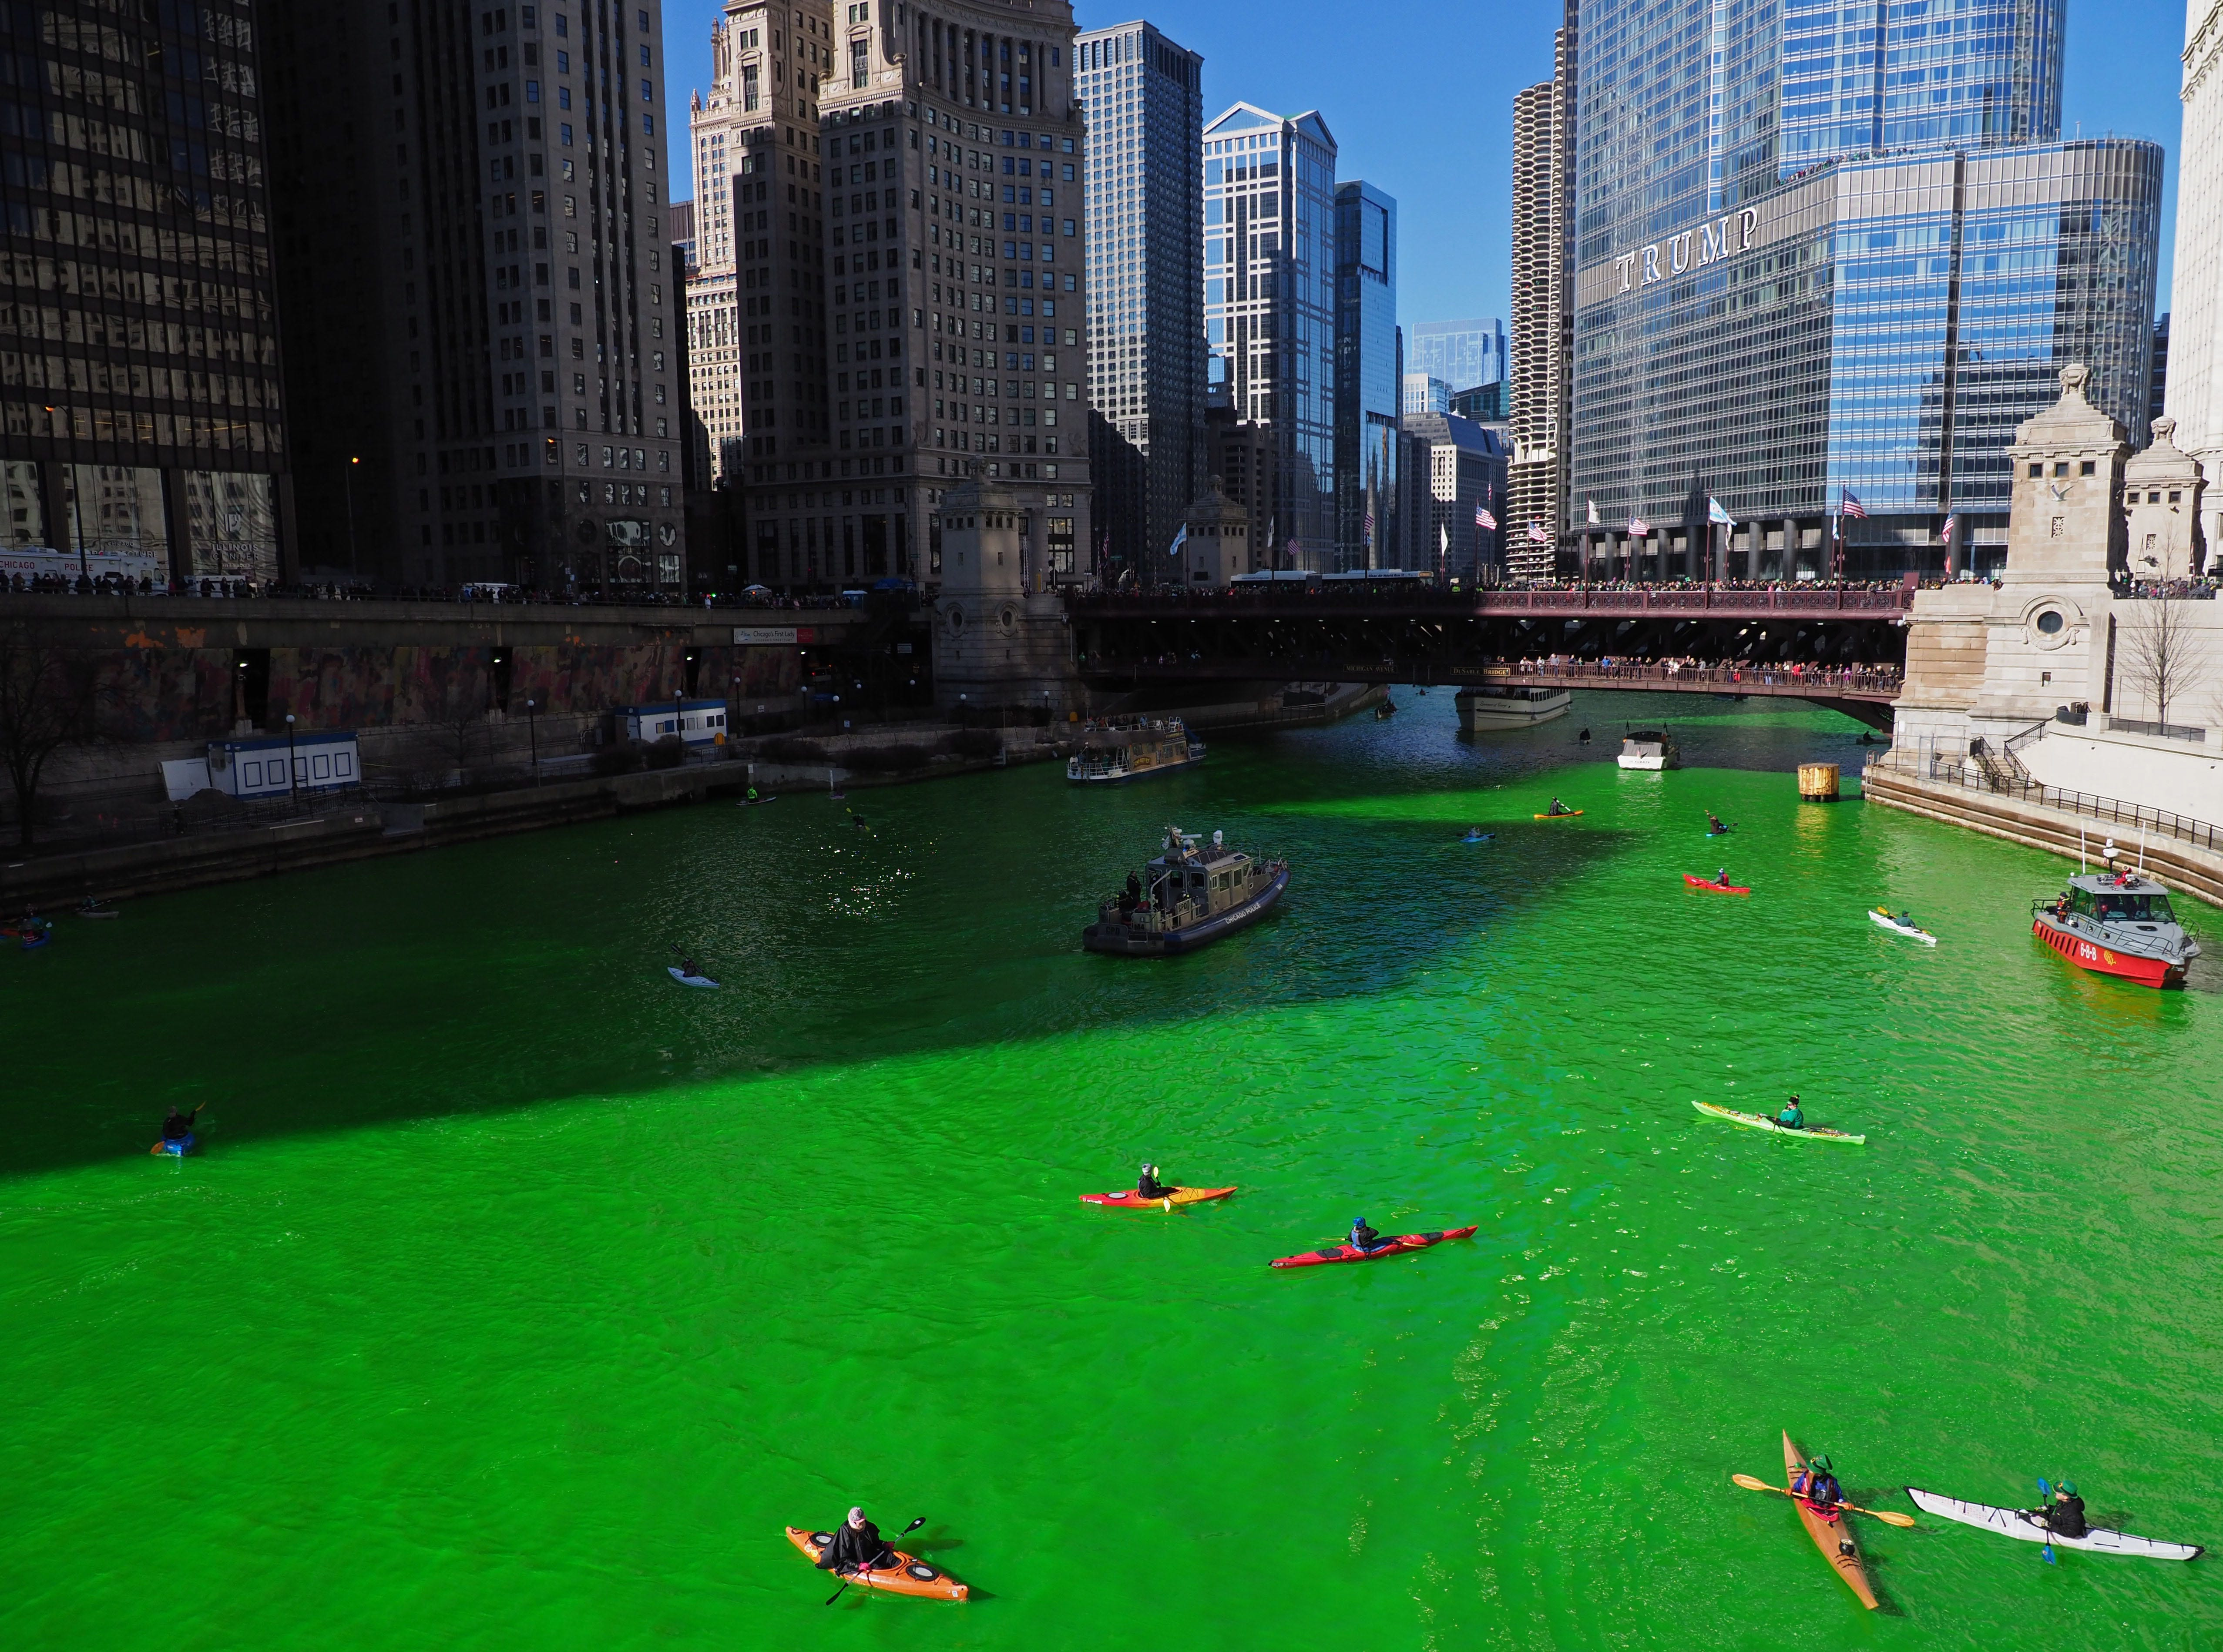 Kayakers make their way up the Chicago River after the river was dyed green in celebration of St. Patrick's Day.